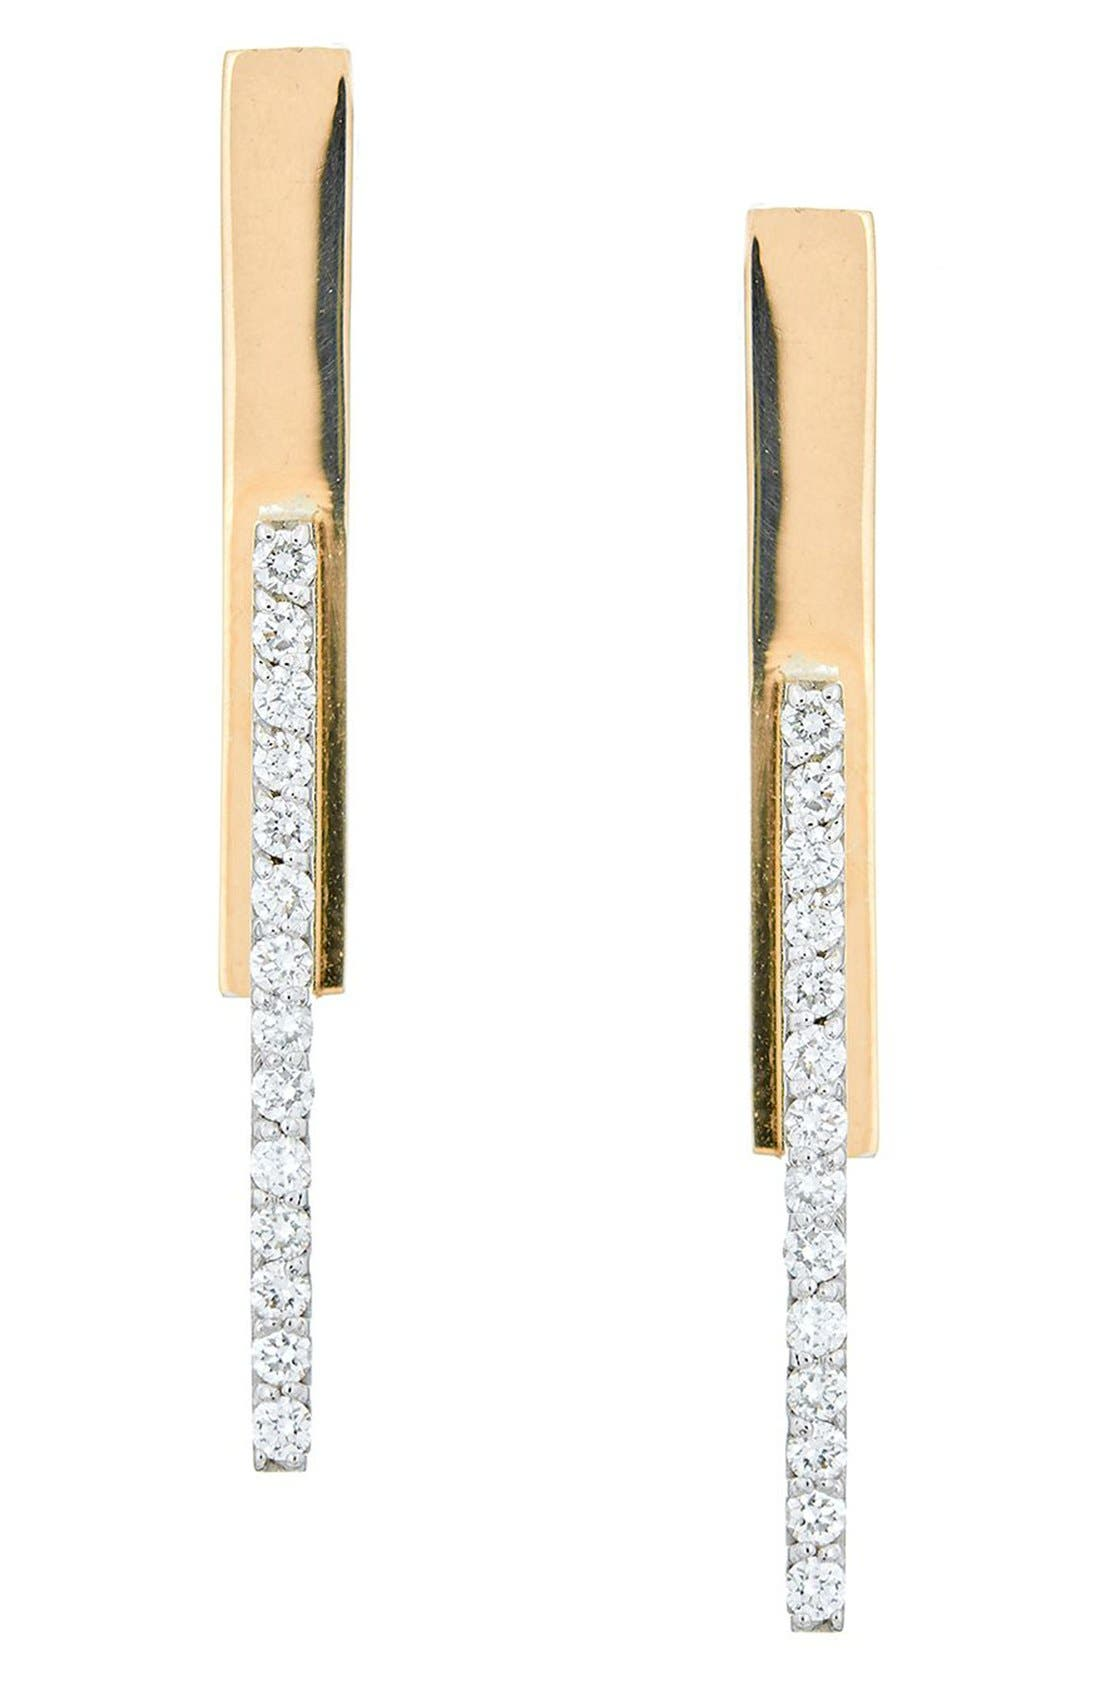 Alternate Image 1 Selected - Lana Jewelry Flawless Diamond Stacked Bar Earrings